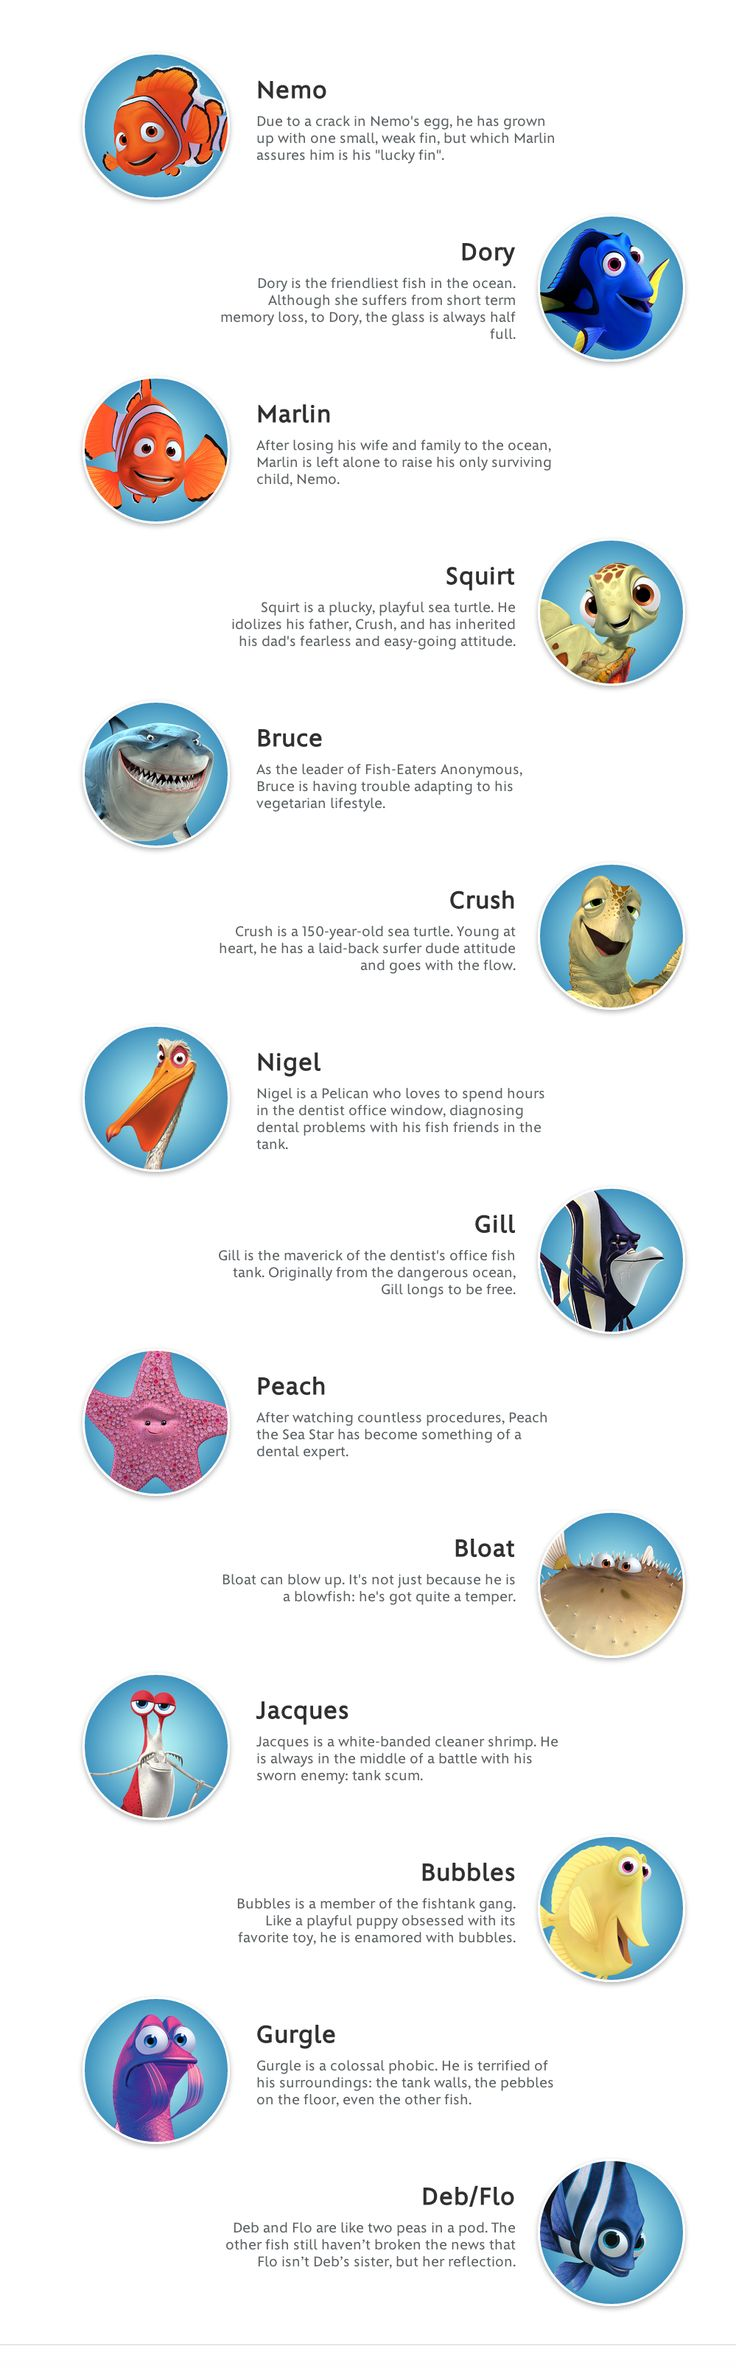 Best 25 finding nemo movie ideas on pinterest finding for Finding nemo fish names